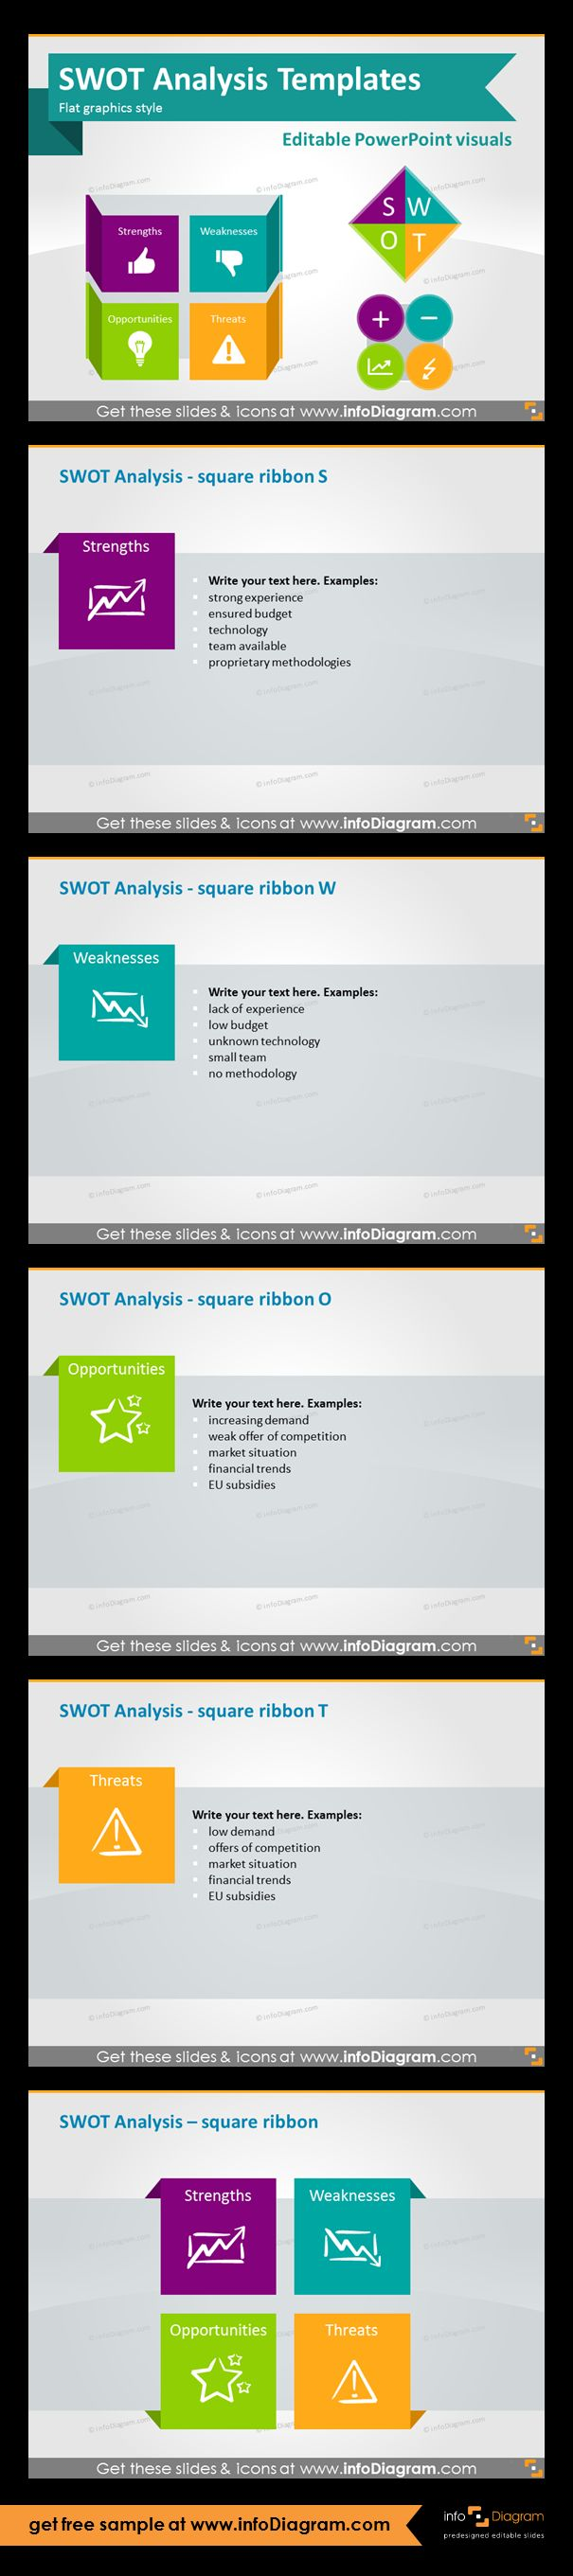 SWOT analysis template diagrams. Square ribbon version, with each element separately and examples. Unique editable icons representing Strengths, Weaknesses, Opportunities, Threats. Fully editable shapes in PowerPoint (color, filling, size - thanks to vector format).